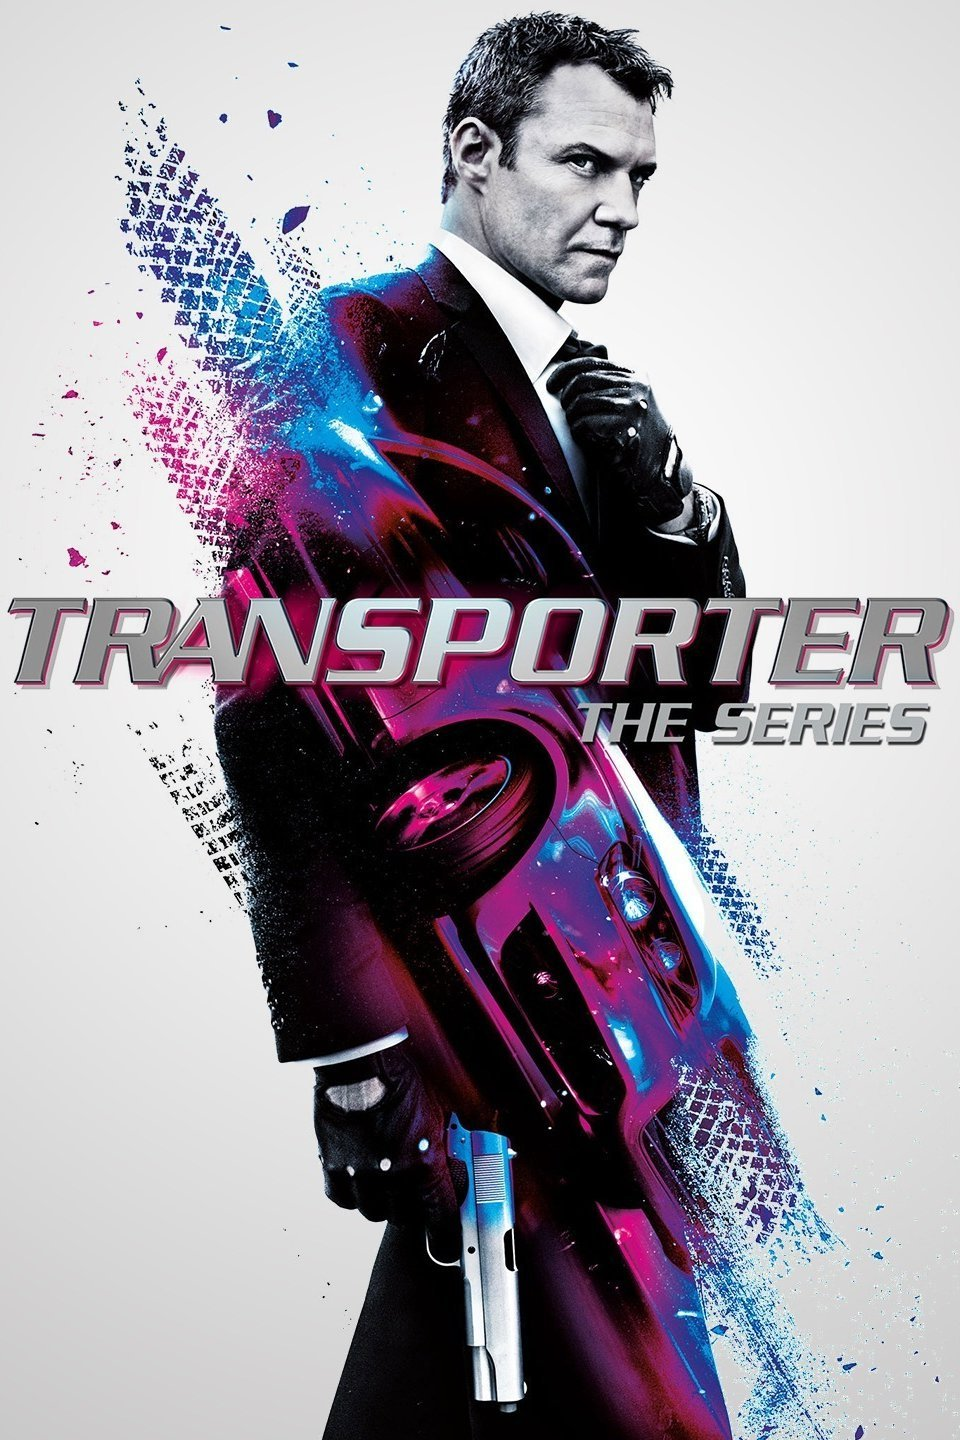 Transporter The Series Season 1-Transporter: The Series 1